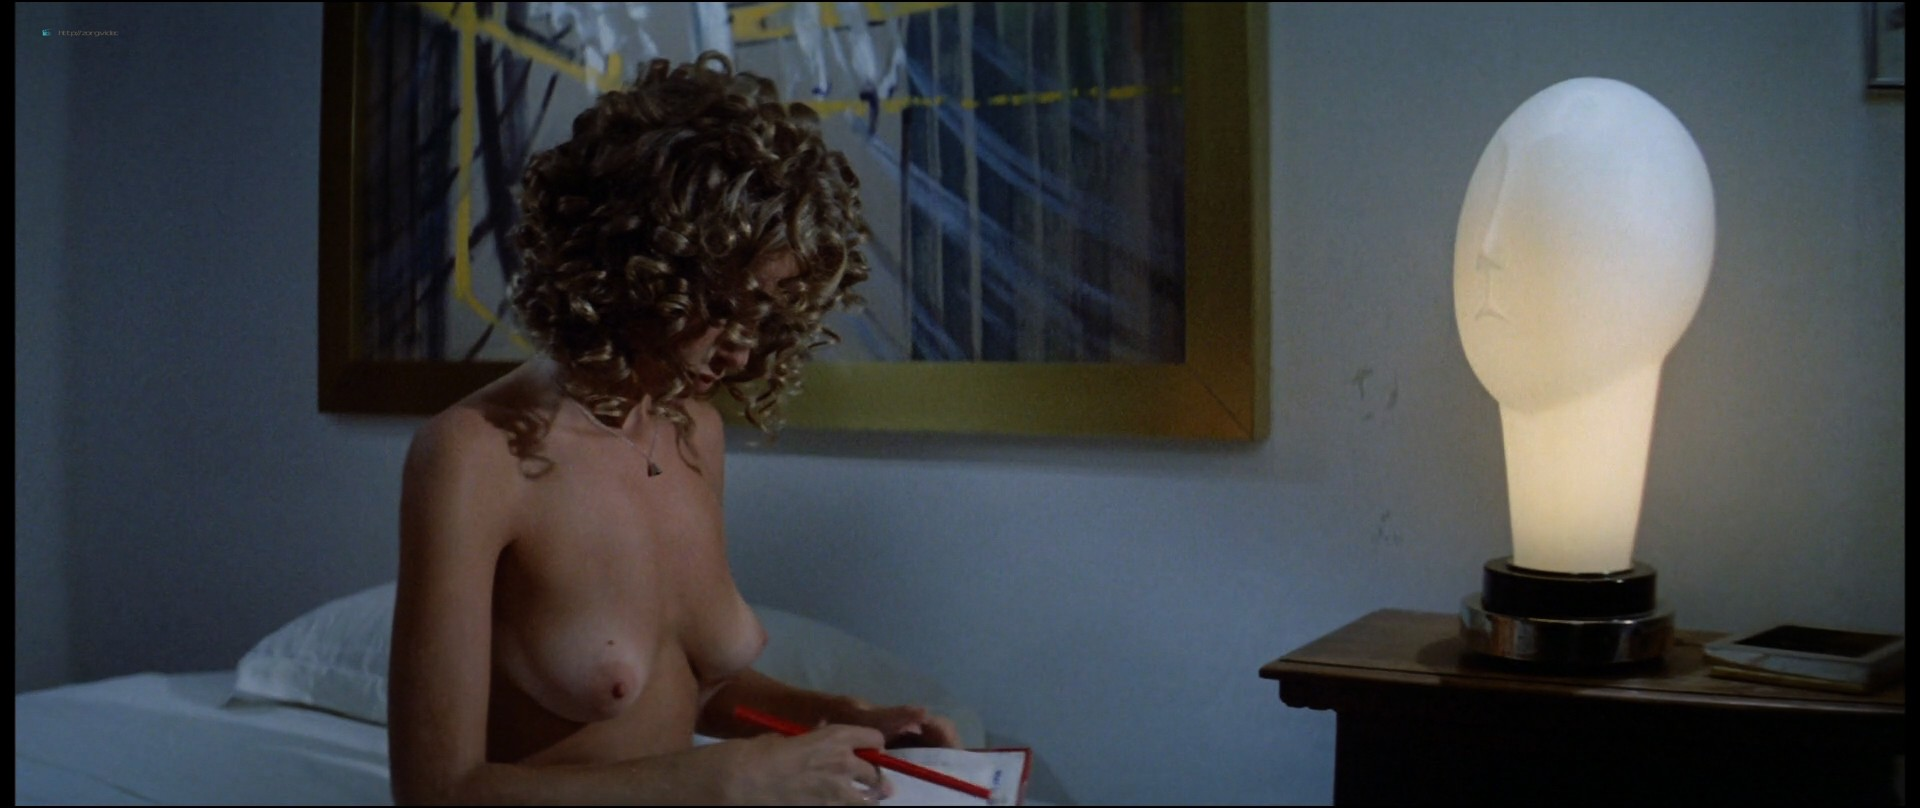 Sydne Rome nude full frontal Renate Langer, Birgitta Nilsson nude too - What? (IT-1972) 1080p BluRay (14)